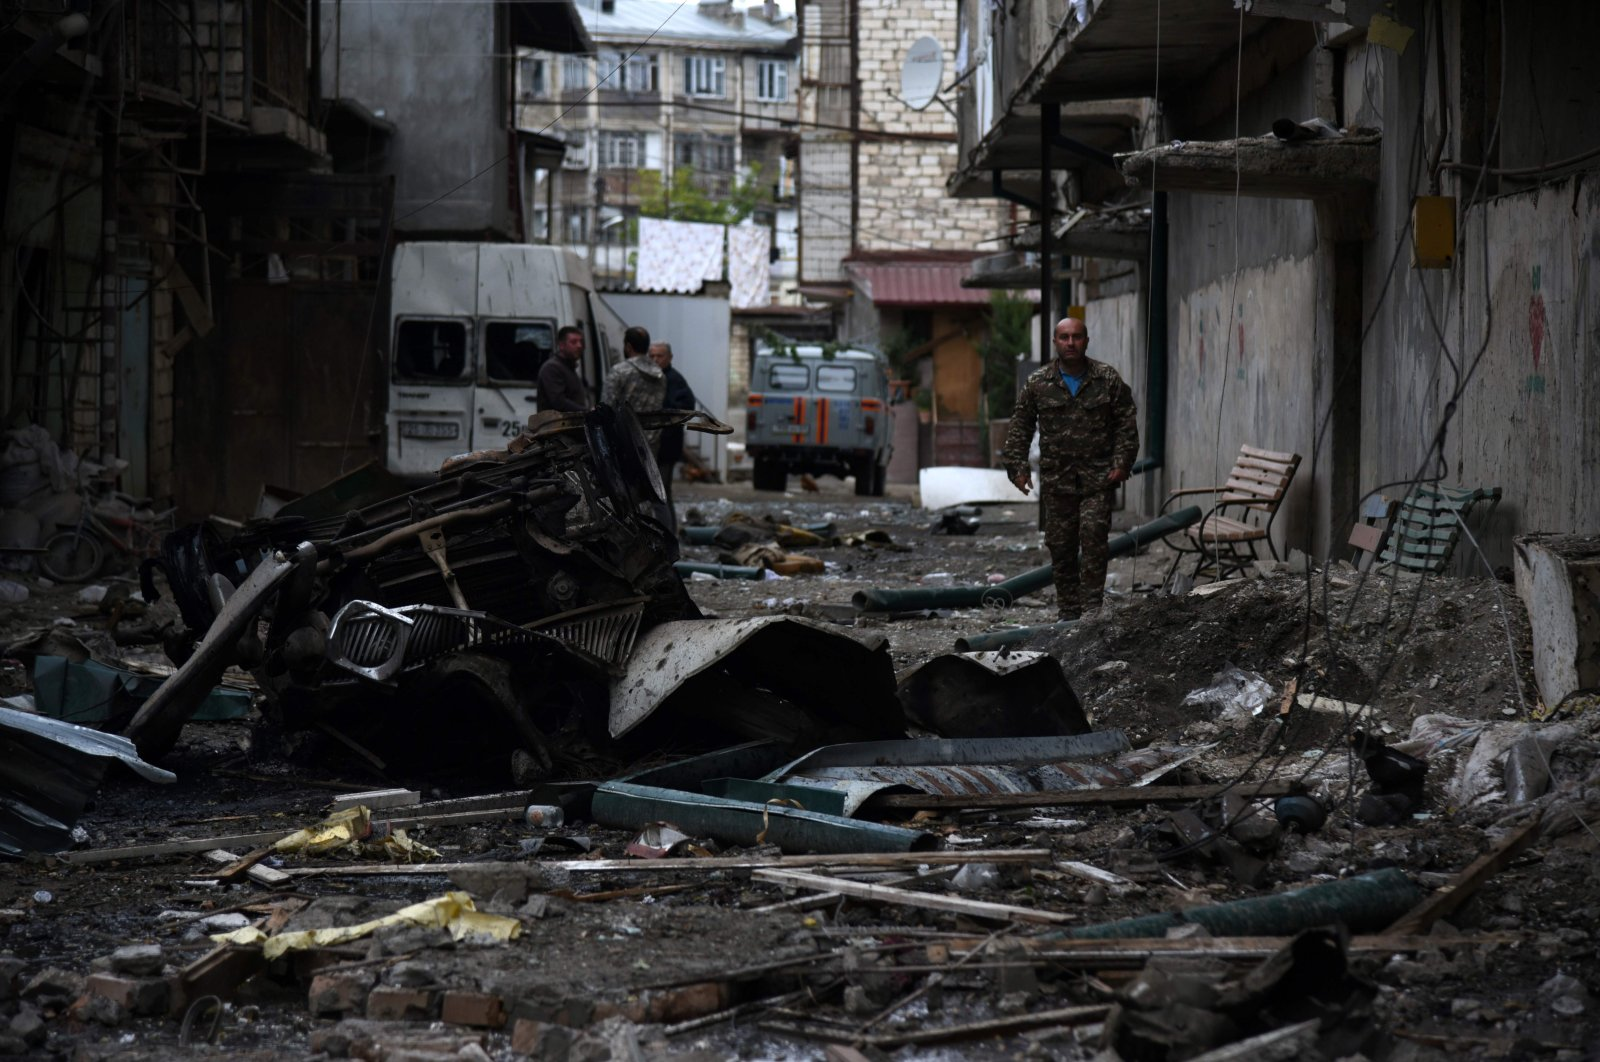 A view shows the aftermath of recent shelling during the ongoing fighting between Armenia and Azerbaijan over the occupied Nagorno-Karabakh region, Oct. 4, 2020. (AFP)